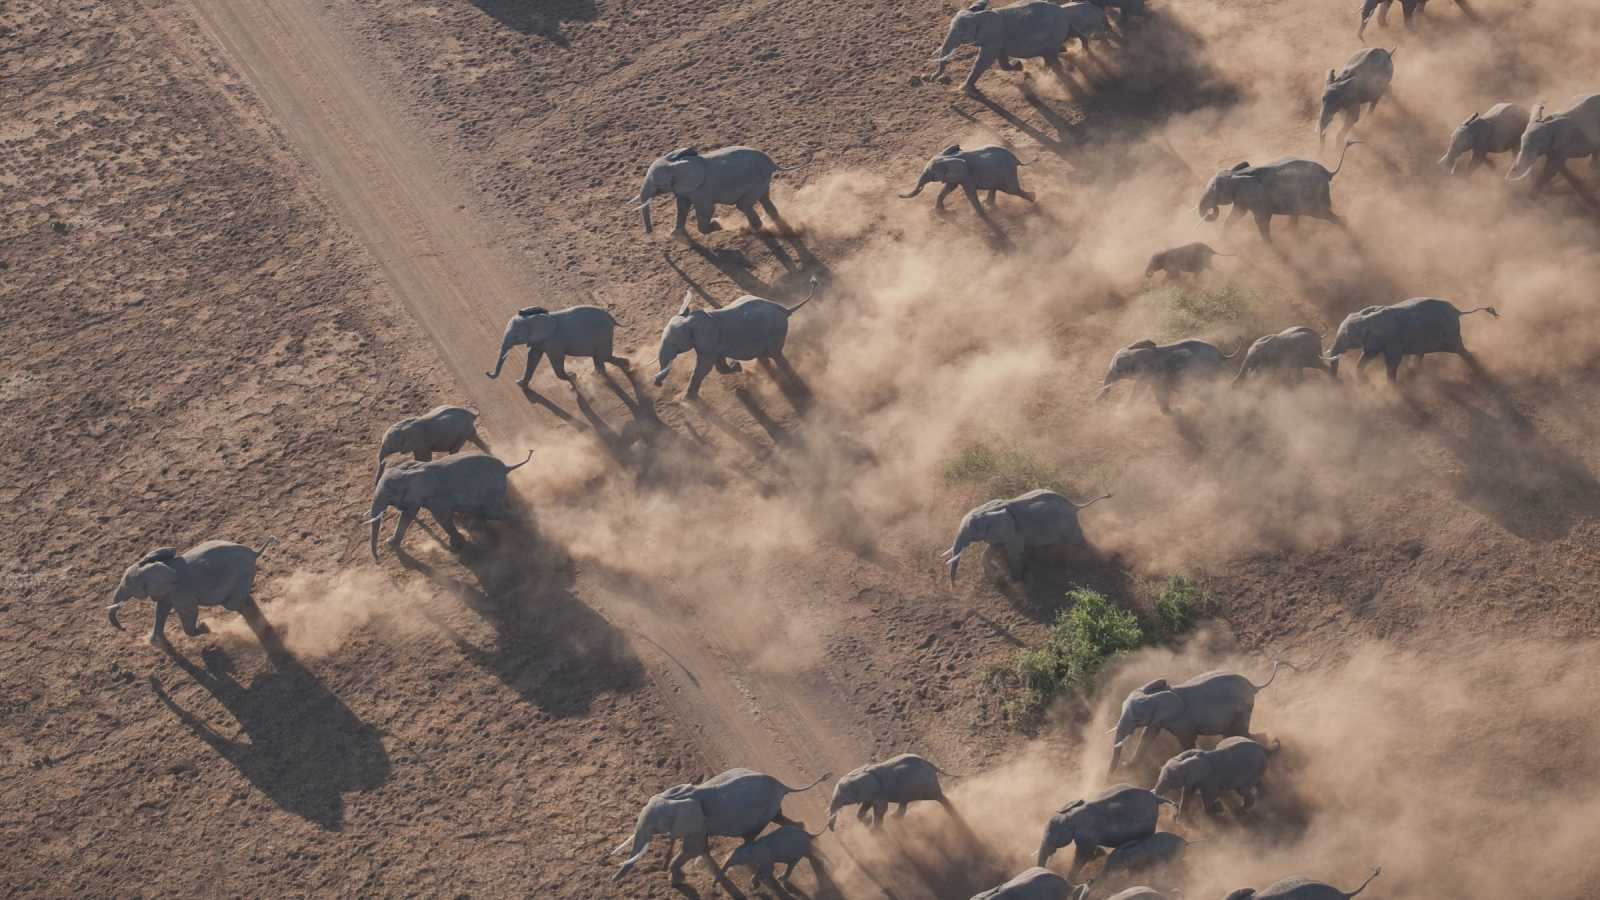 Herd of african elephants in the Masai Mara National Reserve in Kenya